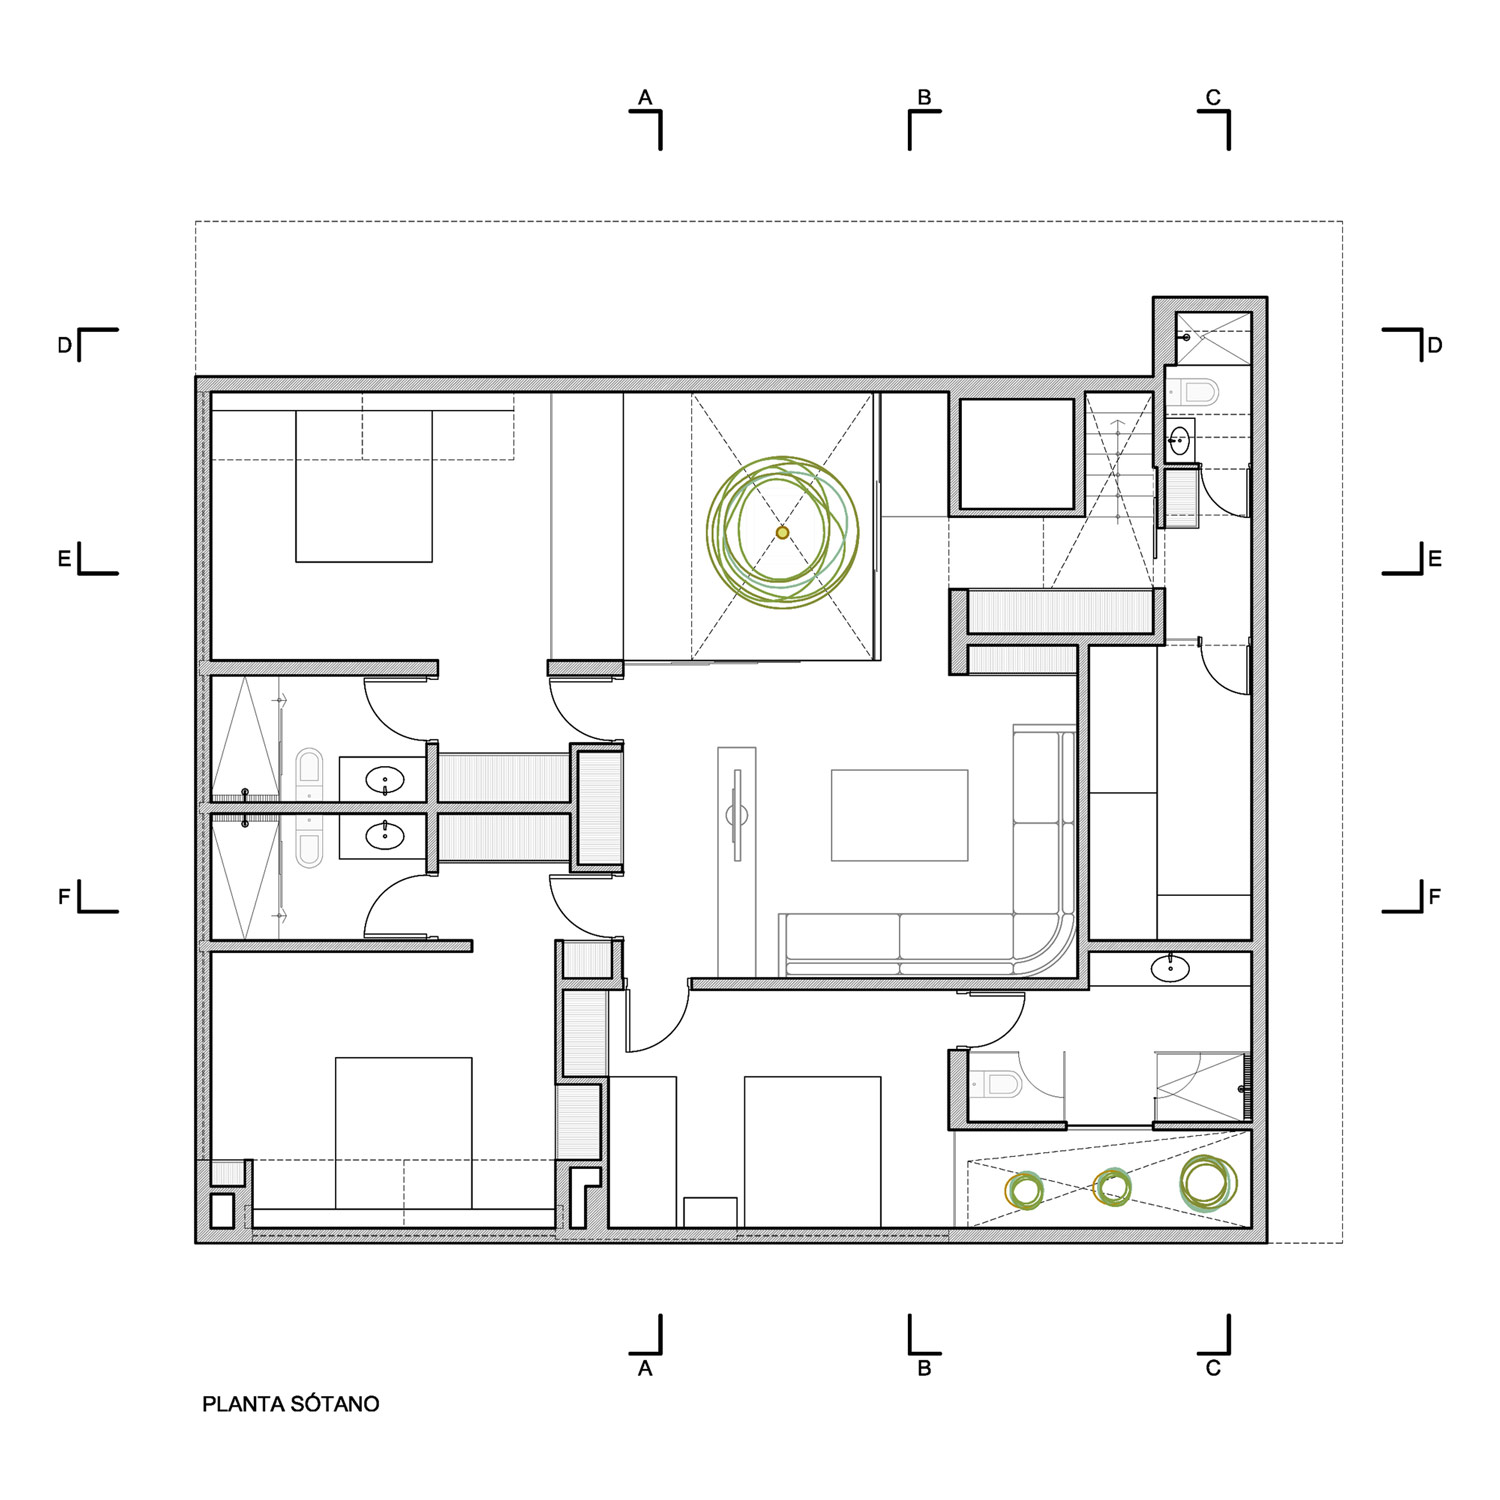 Basement Floor Plan, Luxury Modern Home in Lima, Peru